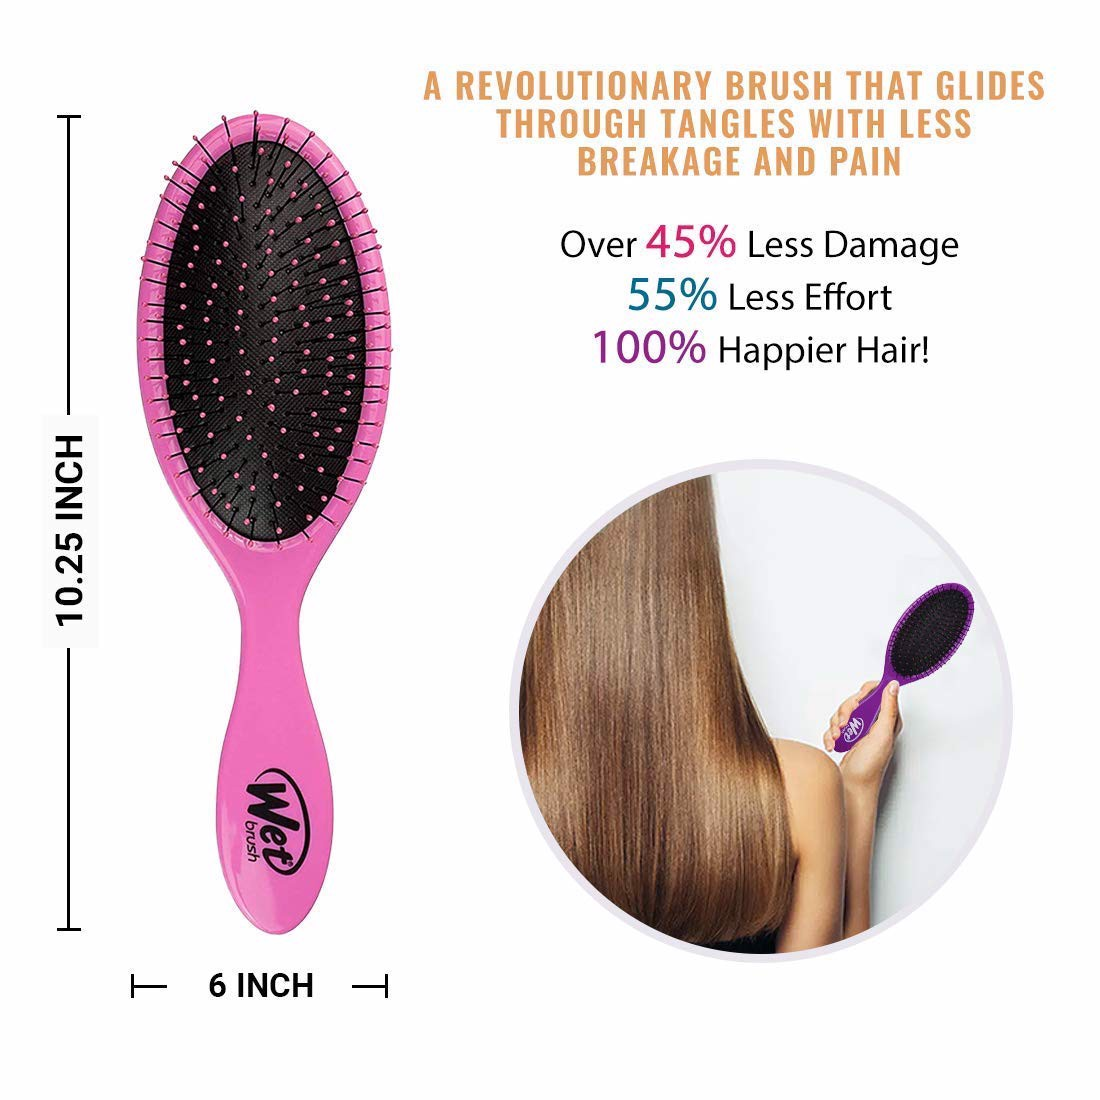 Lược chống rối Wet Brush Original Detangler Hair Brush - Pink (Pack of 3) - Exclusive Ultra-soft IntelliFlex Bristles